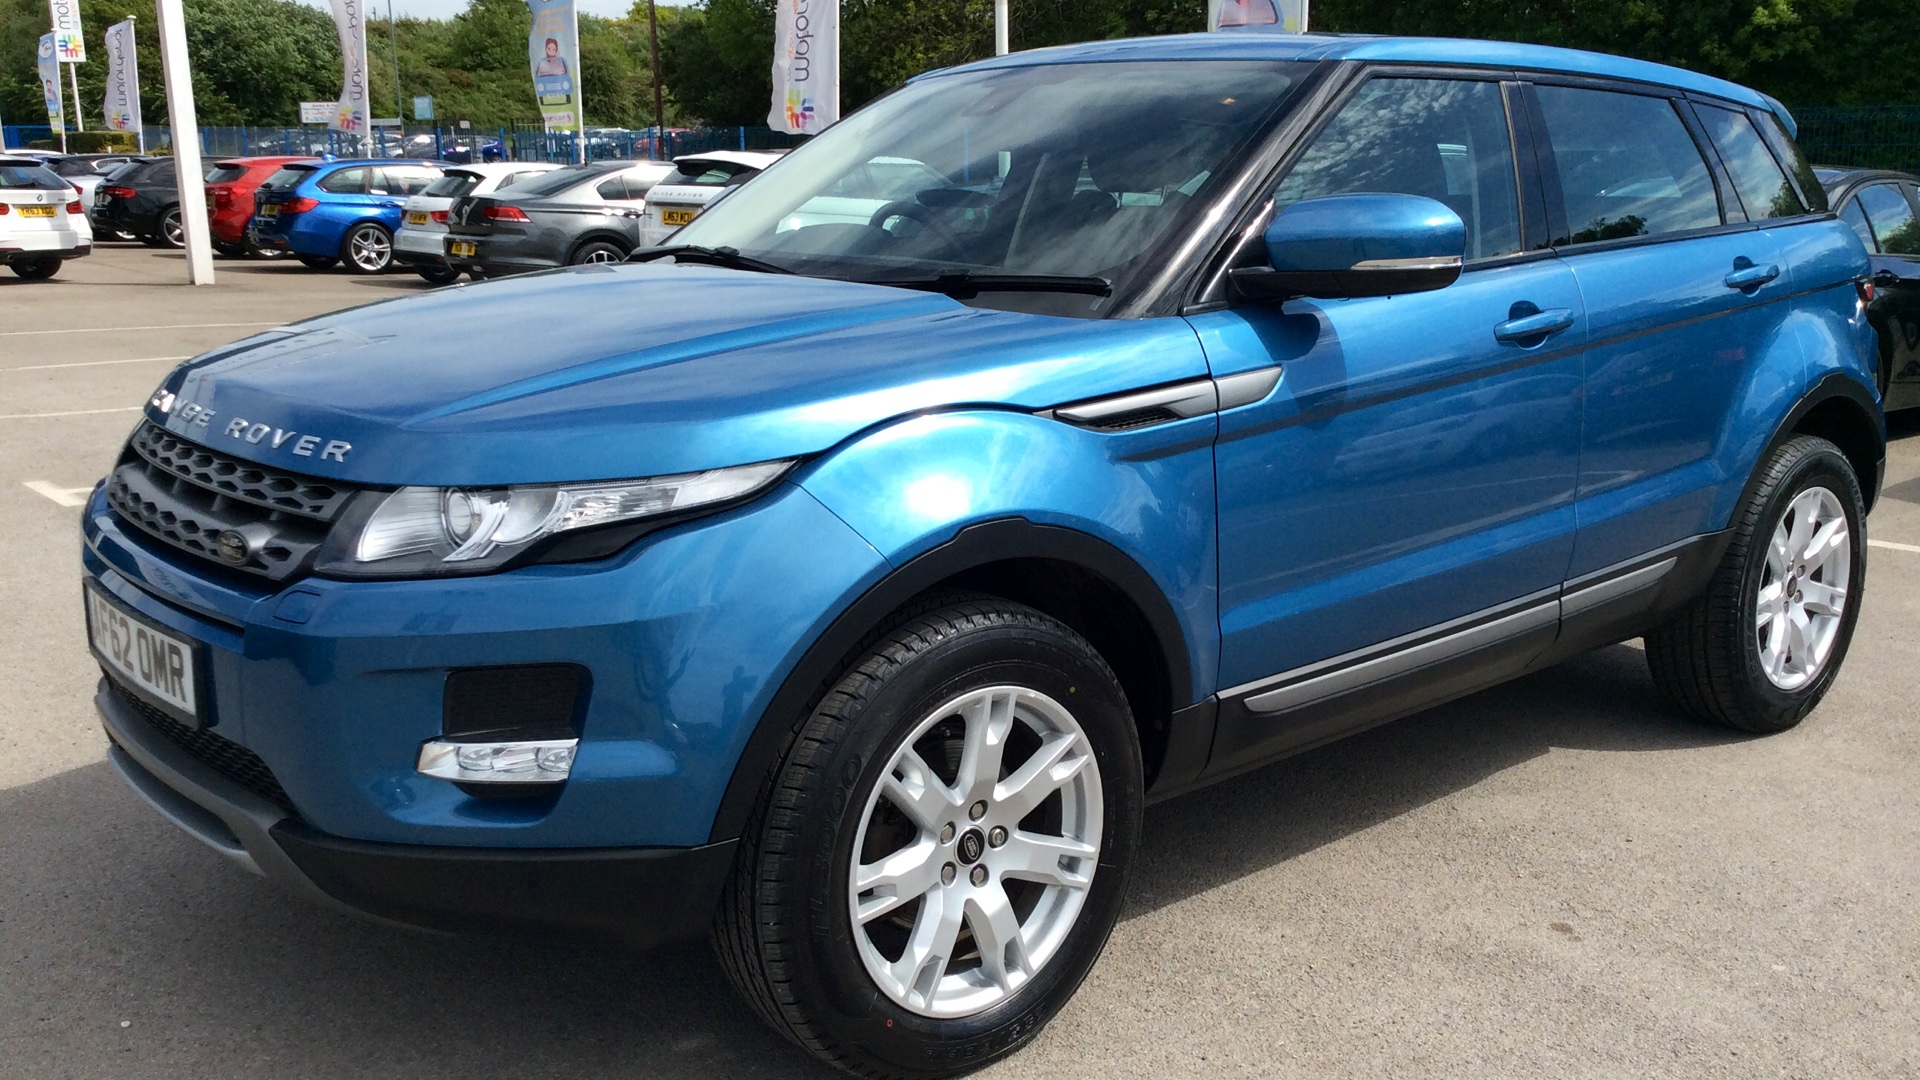 land lease specials evoque deals rover landrover cheap and range